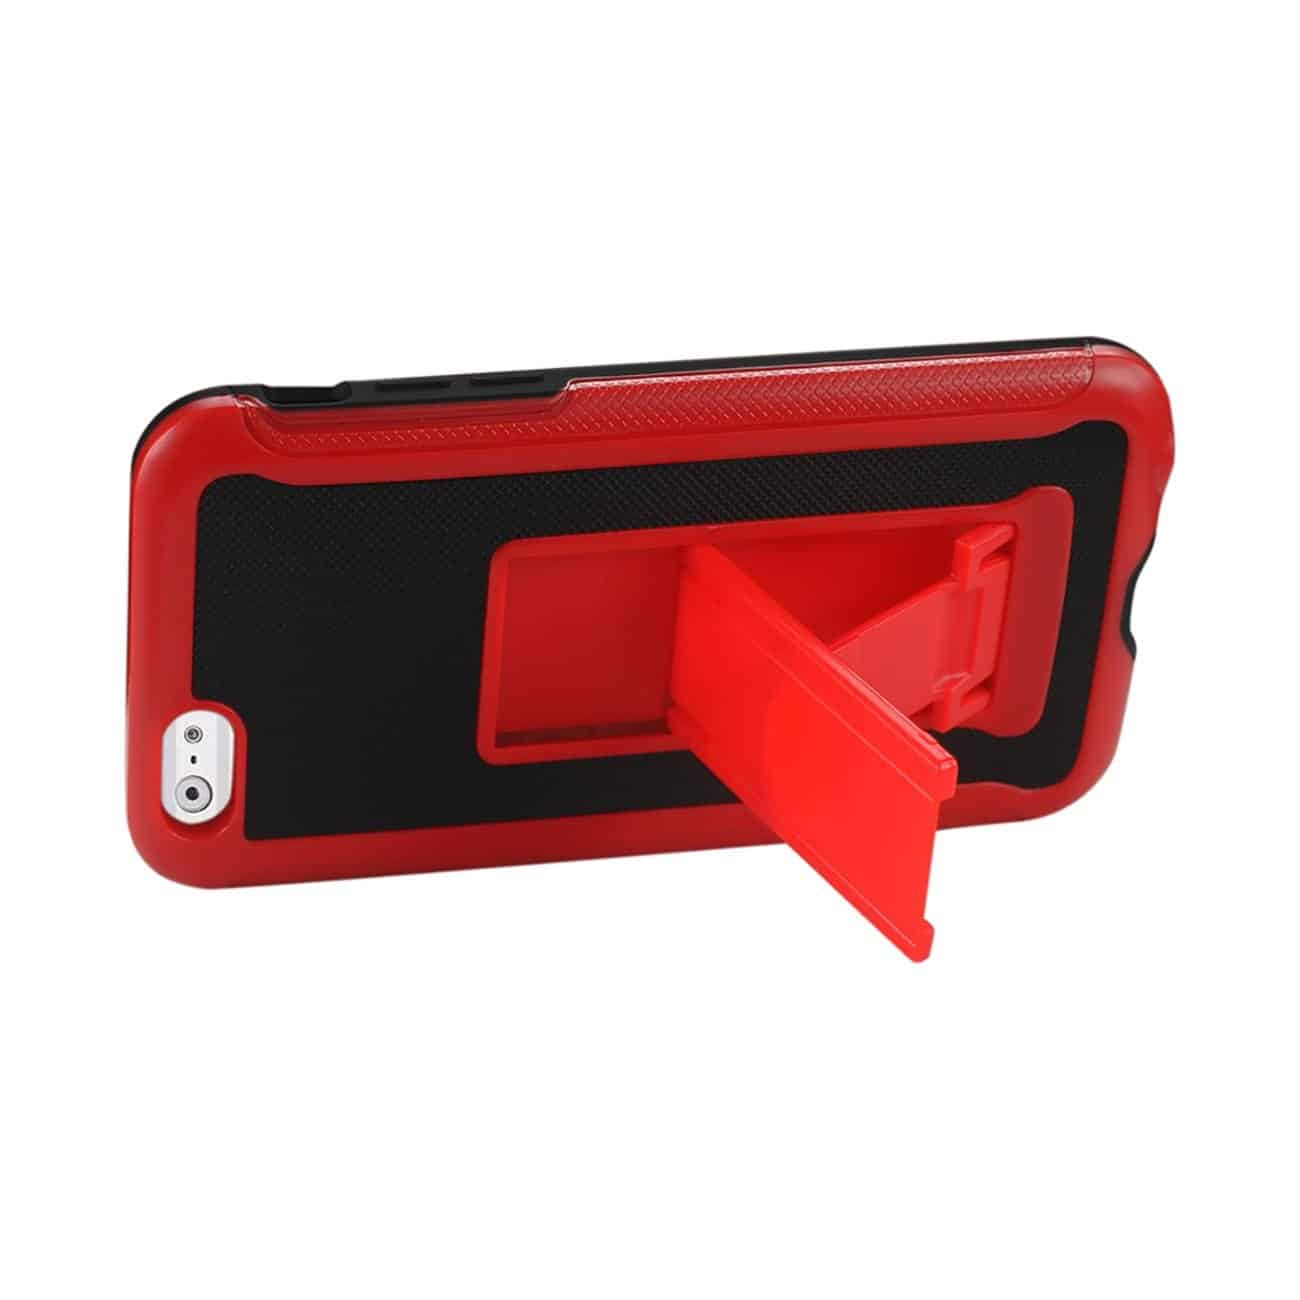 IPHONE 6 PLUS HYBRID HEAVY DUTY CASE WITH VERTICAL KICKSTAND IN BLACK RED